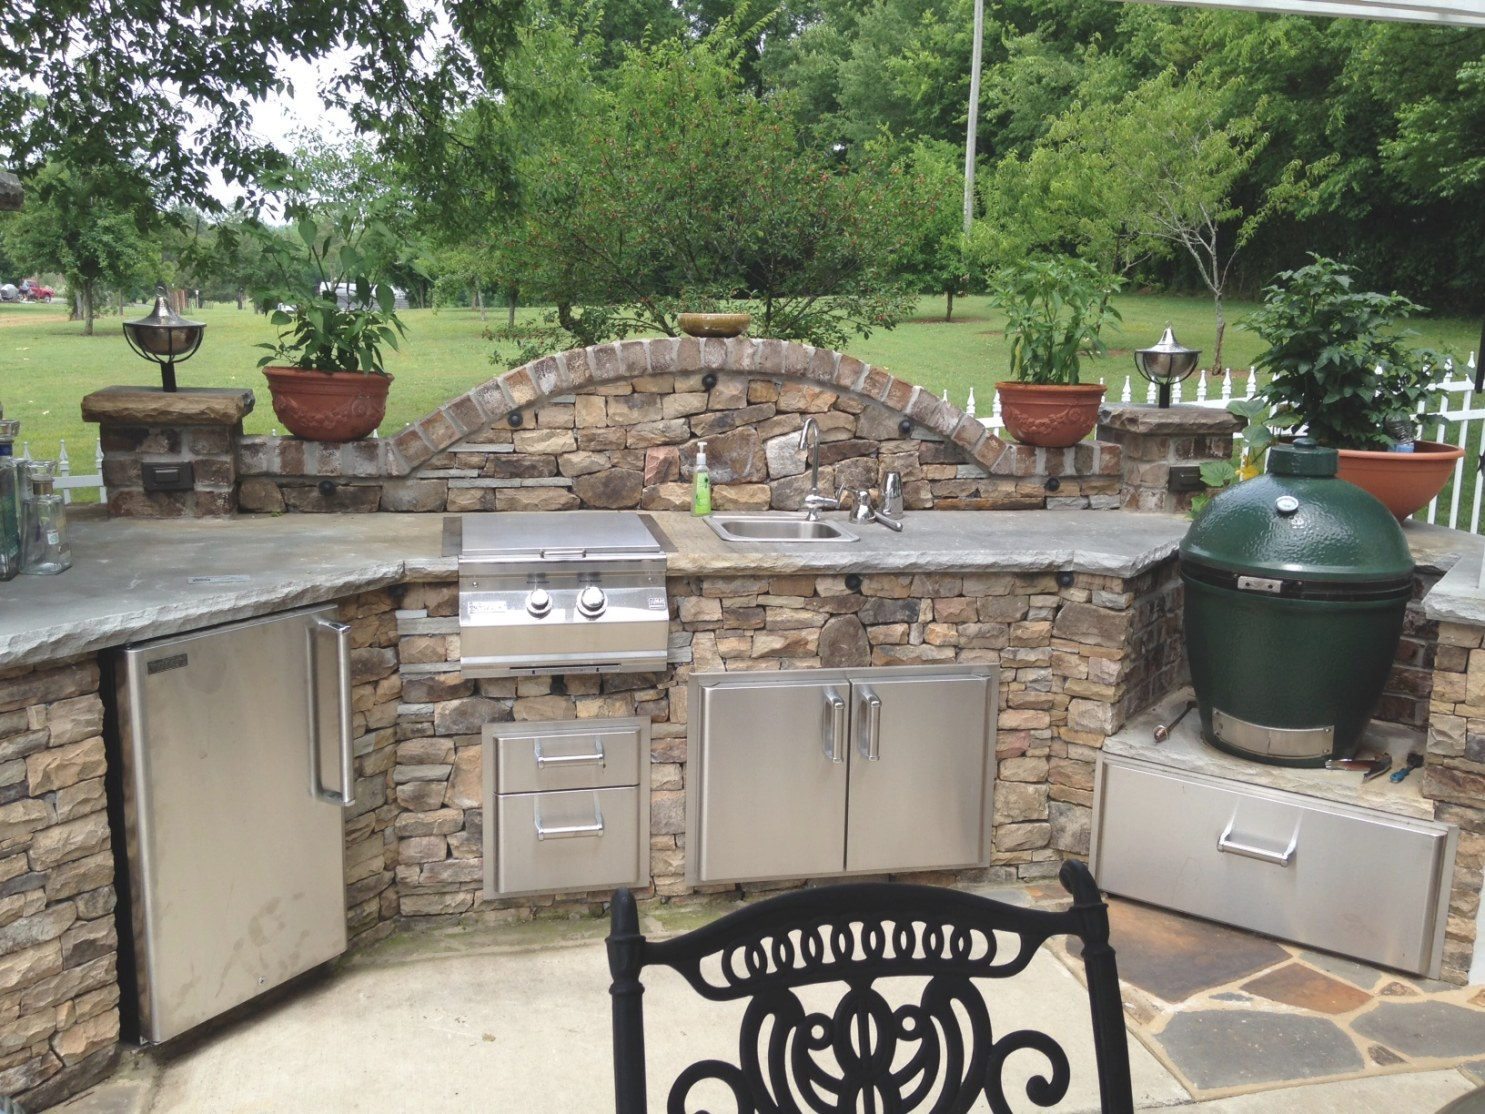 Big Green Egg Outdoor Kitchen - Fine's Gas Blog inside Big Green Egg Outdoor Kitchen